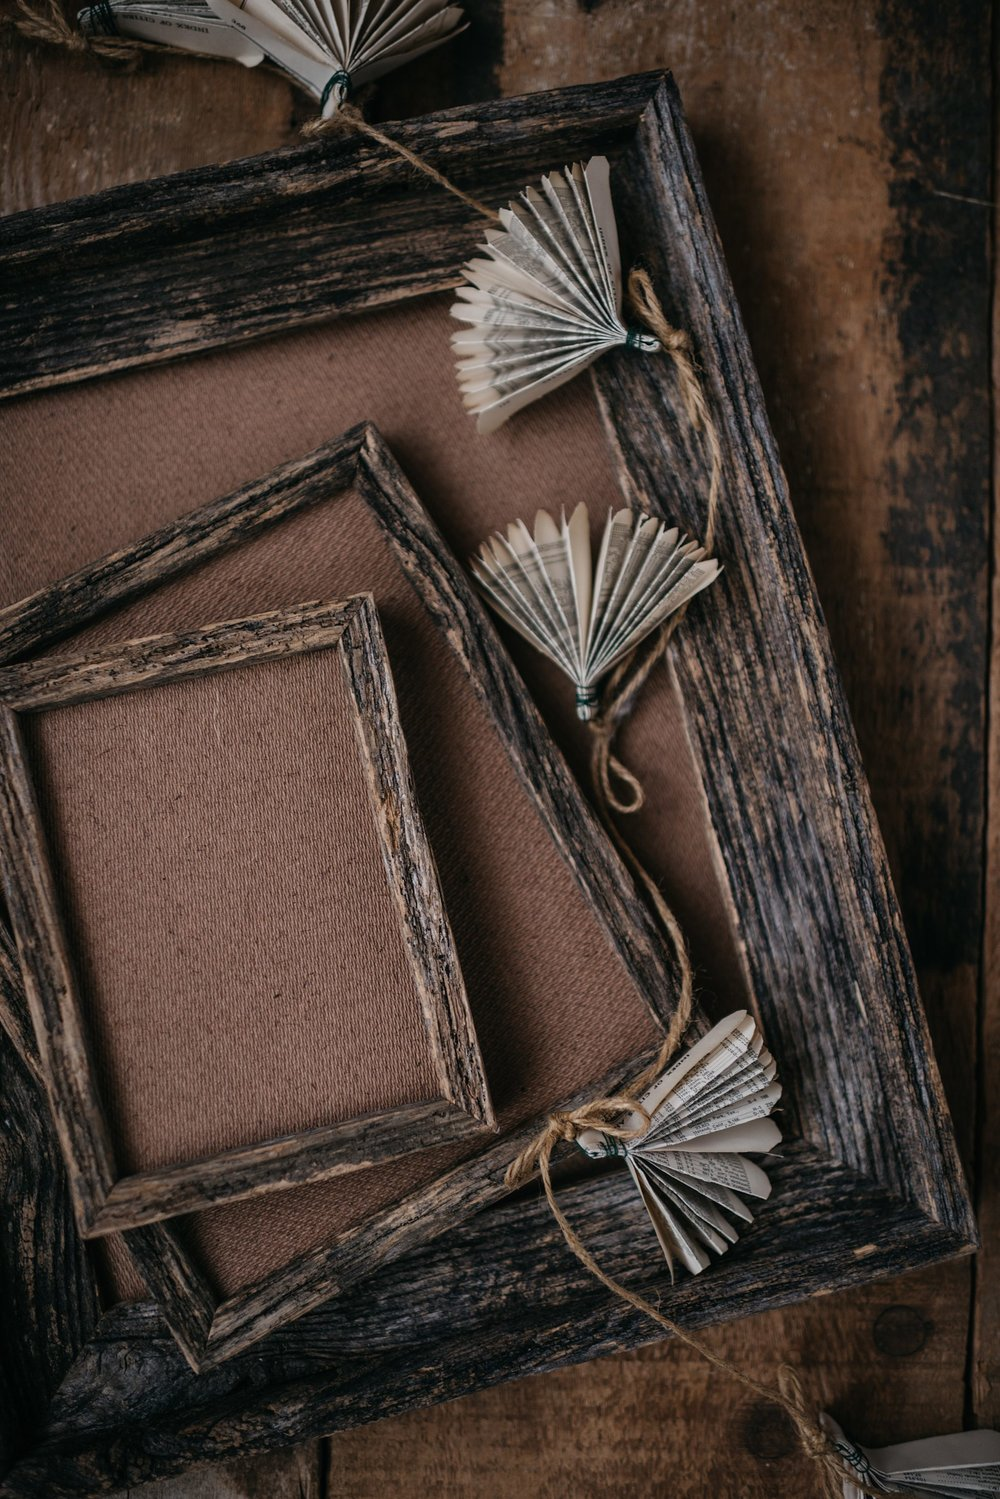 Our barnwood frames are handcrafted from locally sourced reclaimed wood and are a perfect compliment to any of our print product options.No glass.Additional sizes and options available upon request. Barnwood Frame Pricing: 5x7 - $80 | 8x10 - $120 8x12 - $120 | 11x14 - $180 | 16x20 - $240 16x24 - $270 | 20x30 - $450 | 30x40 - $680